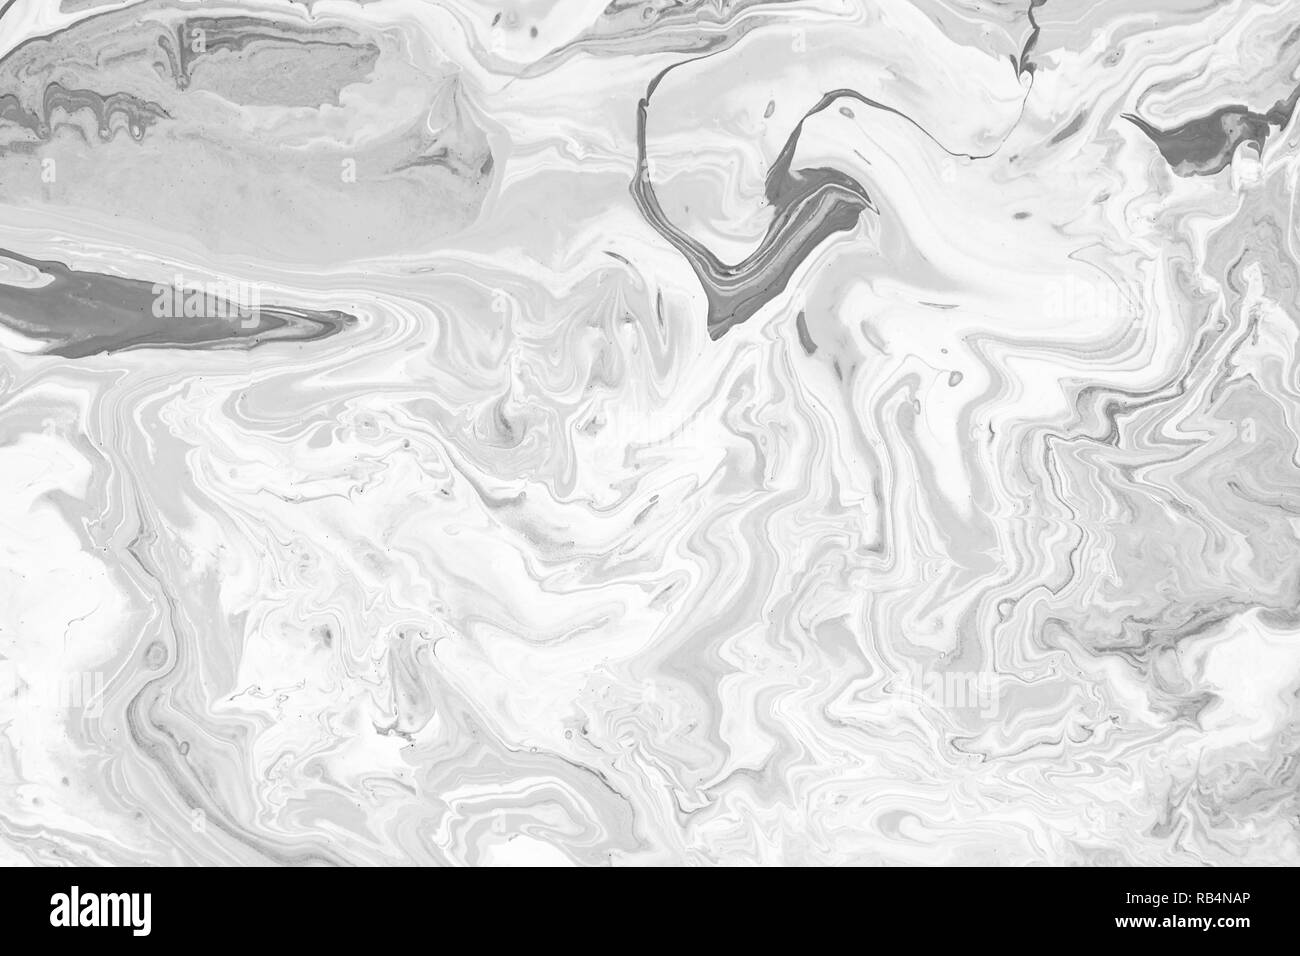 Marble White Black Abstract Background Texture High Resolution For Design Blackdrop Or Overlay Stock Photo Alamy